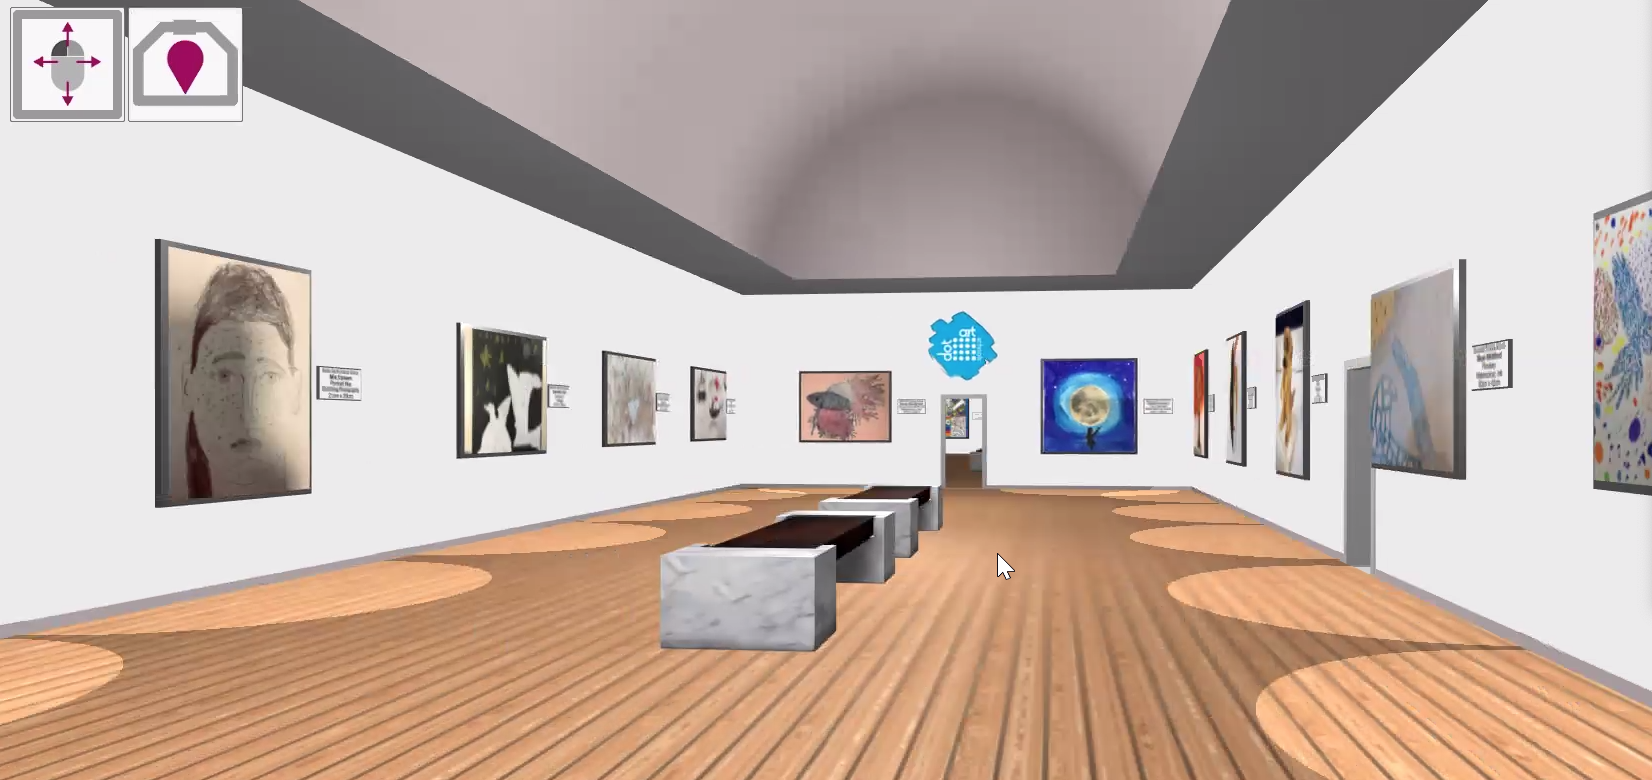 Virtual Gallery Opens Its Doors to Celebrate Art in Schools!